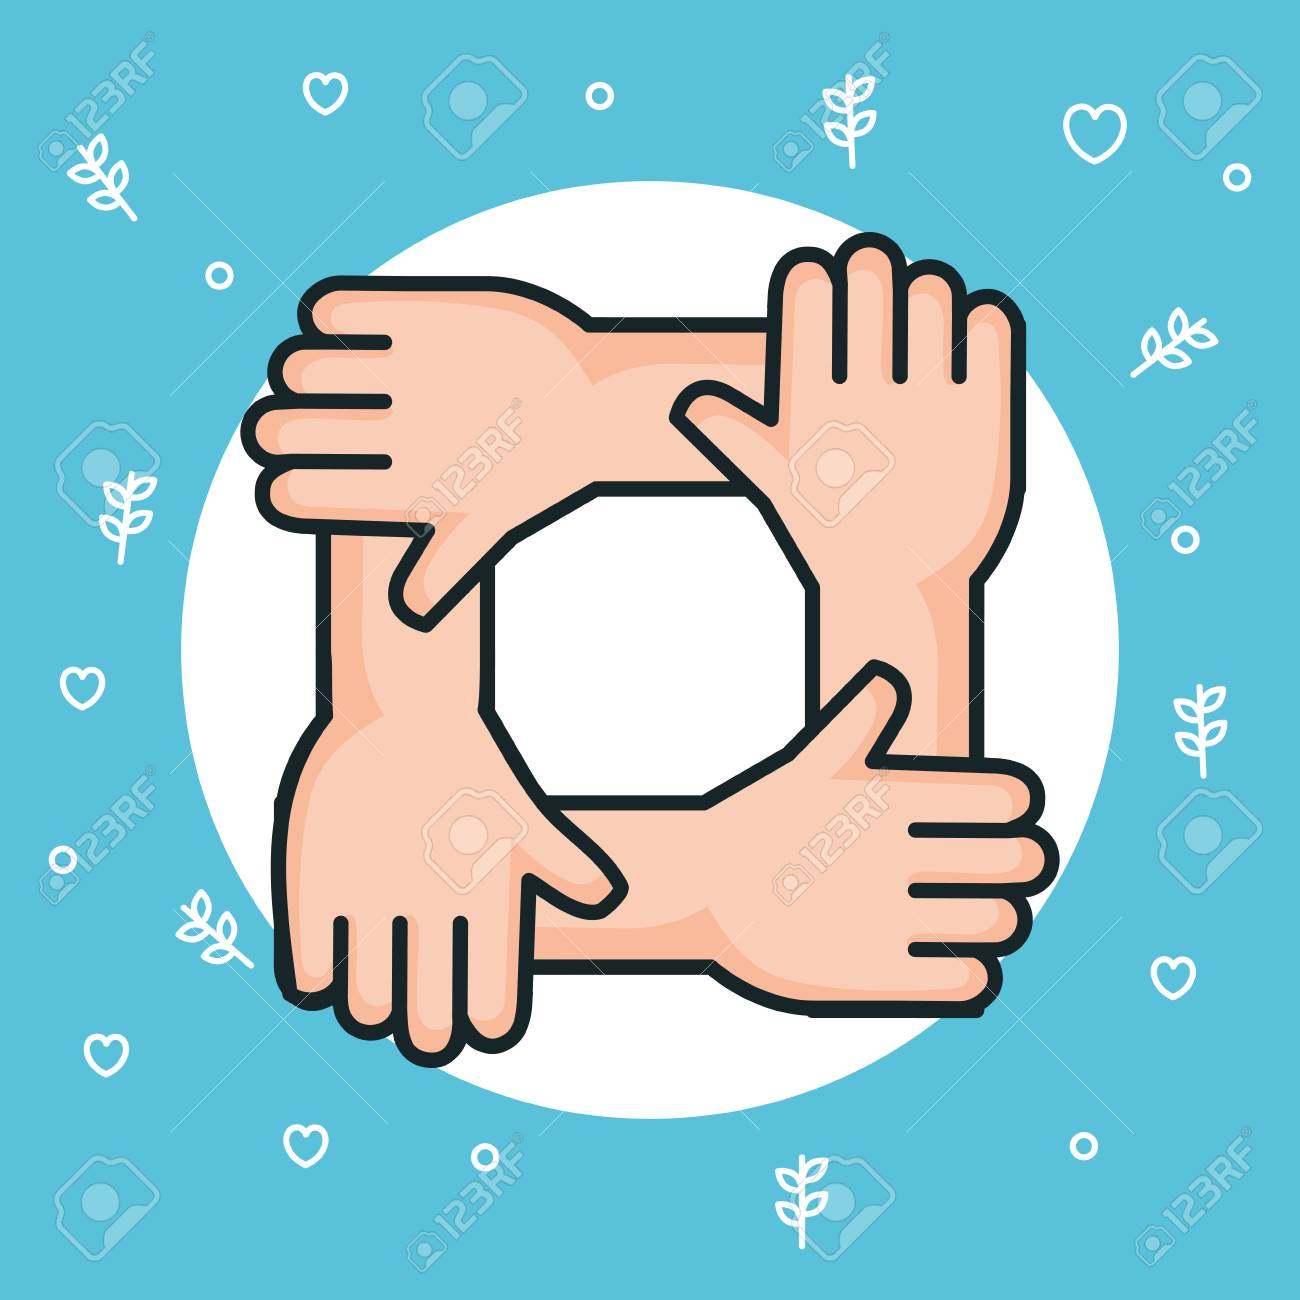 Hands Symbol Peace Unity Community Vector Illustration Royalty Free Cliparts Vectors And Stock Illustration Image 83871028